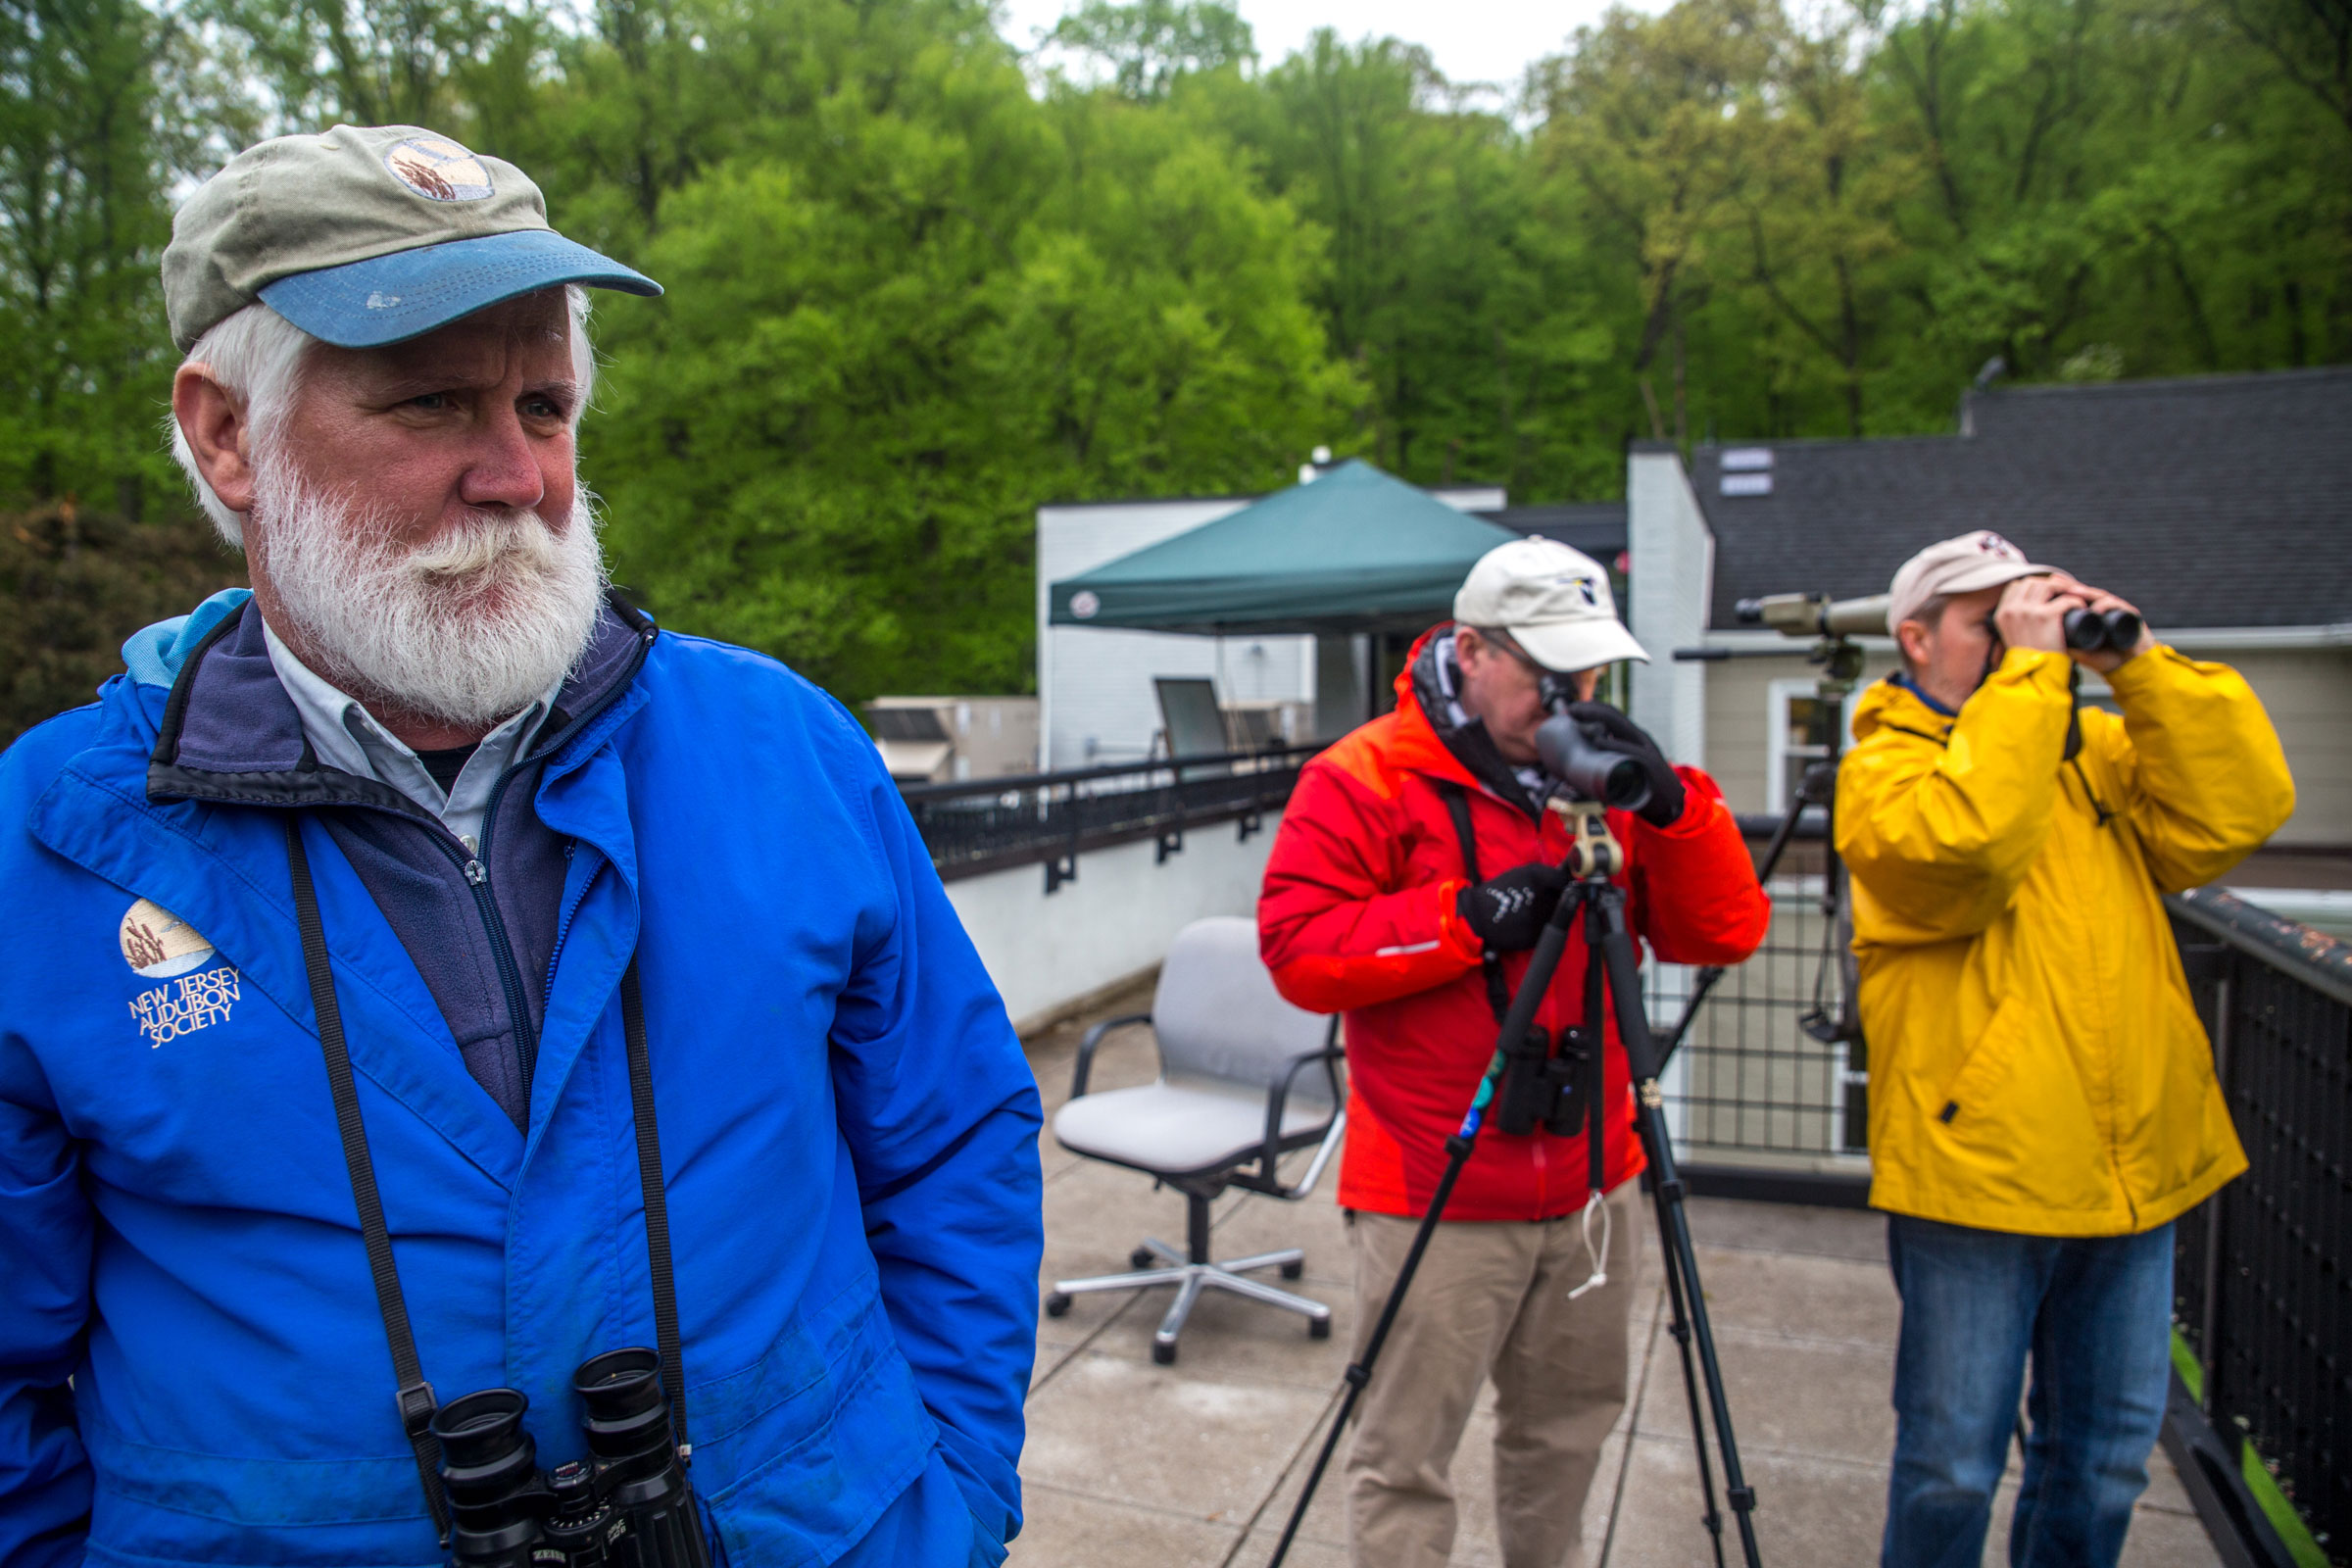 Mike Anderson (left) listens for distant sparrows while Dan and Ron Barkley scope the canopy. Camilla Cerea/Audubon